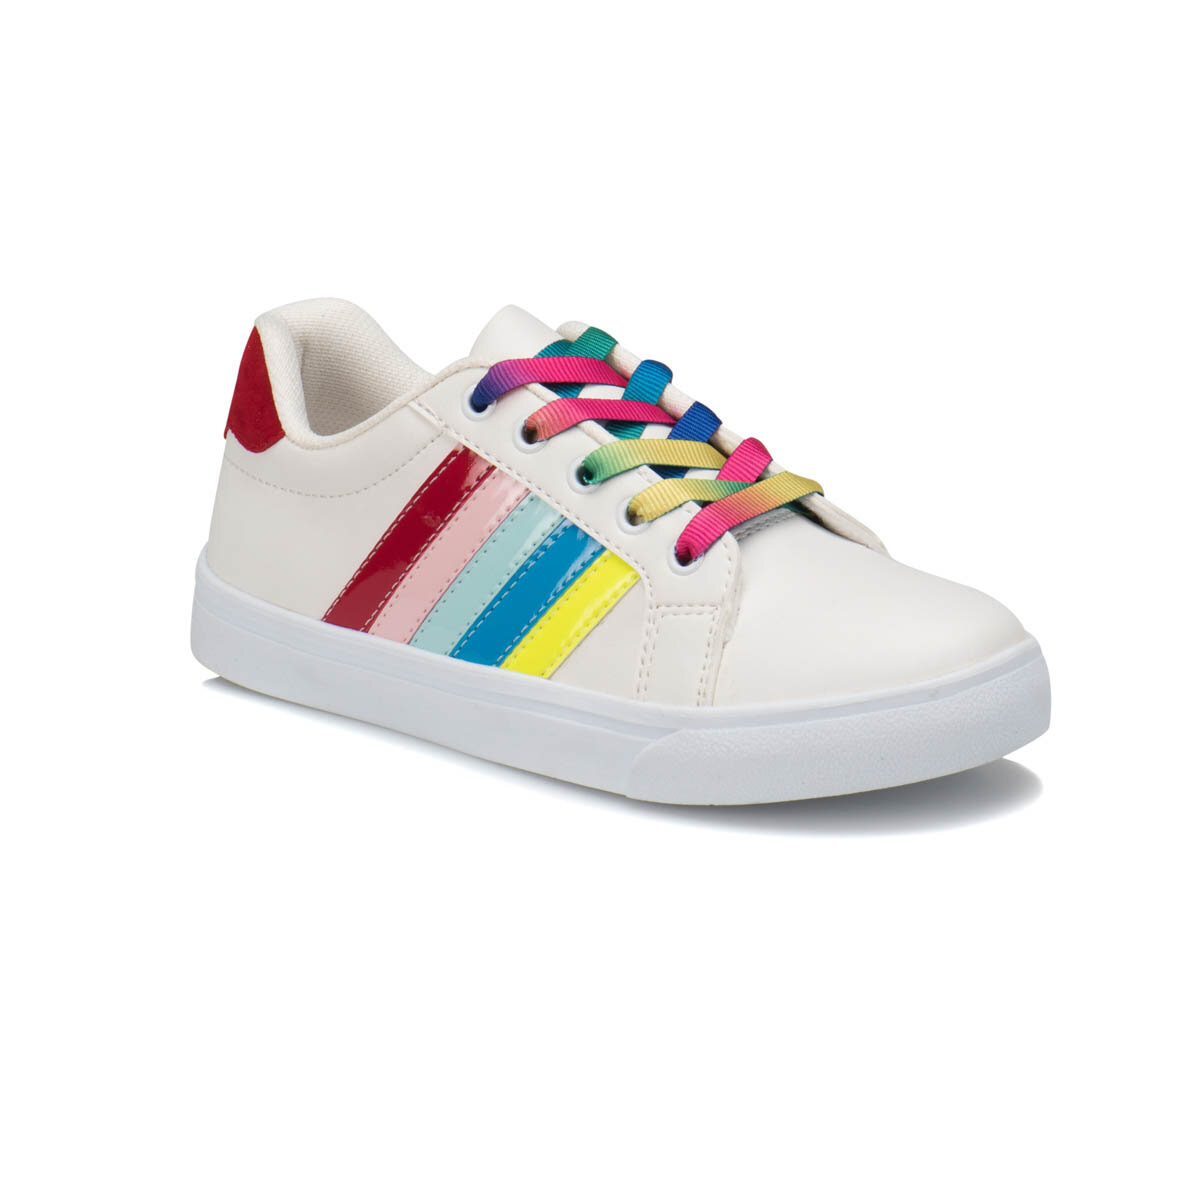 FLO FUNNY White Female Child Sneaker Shoes I-Cool